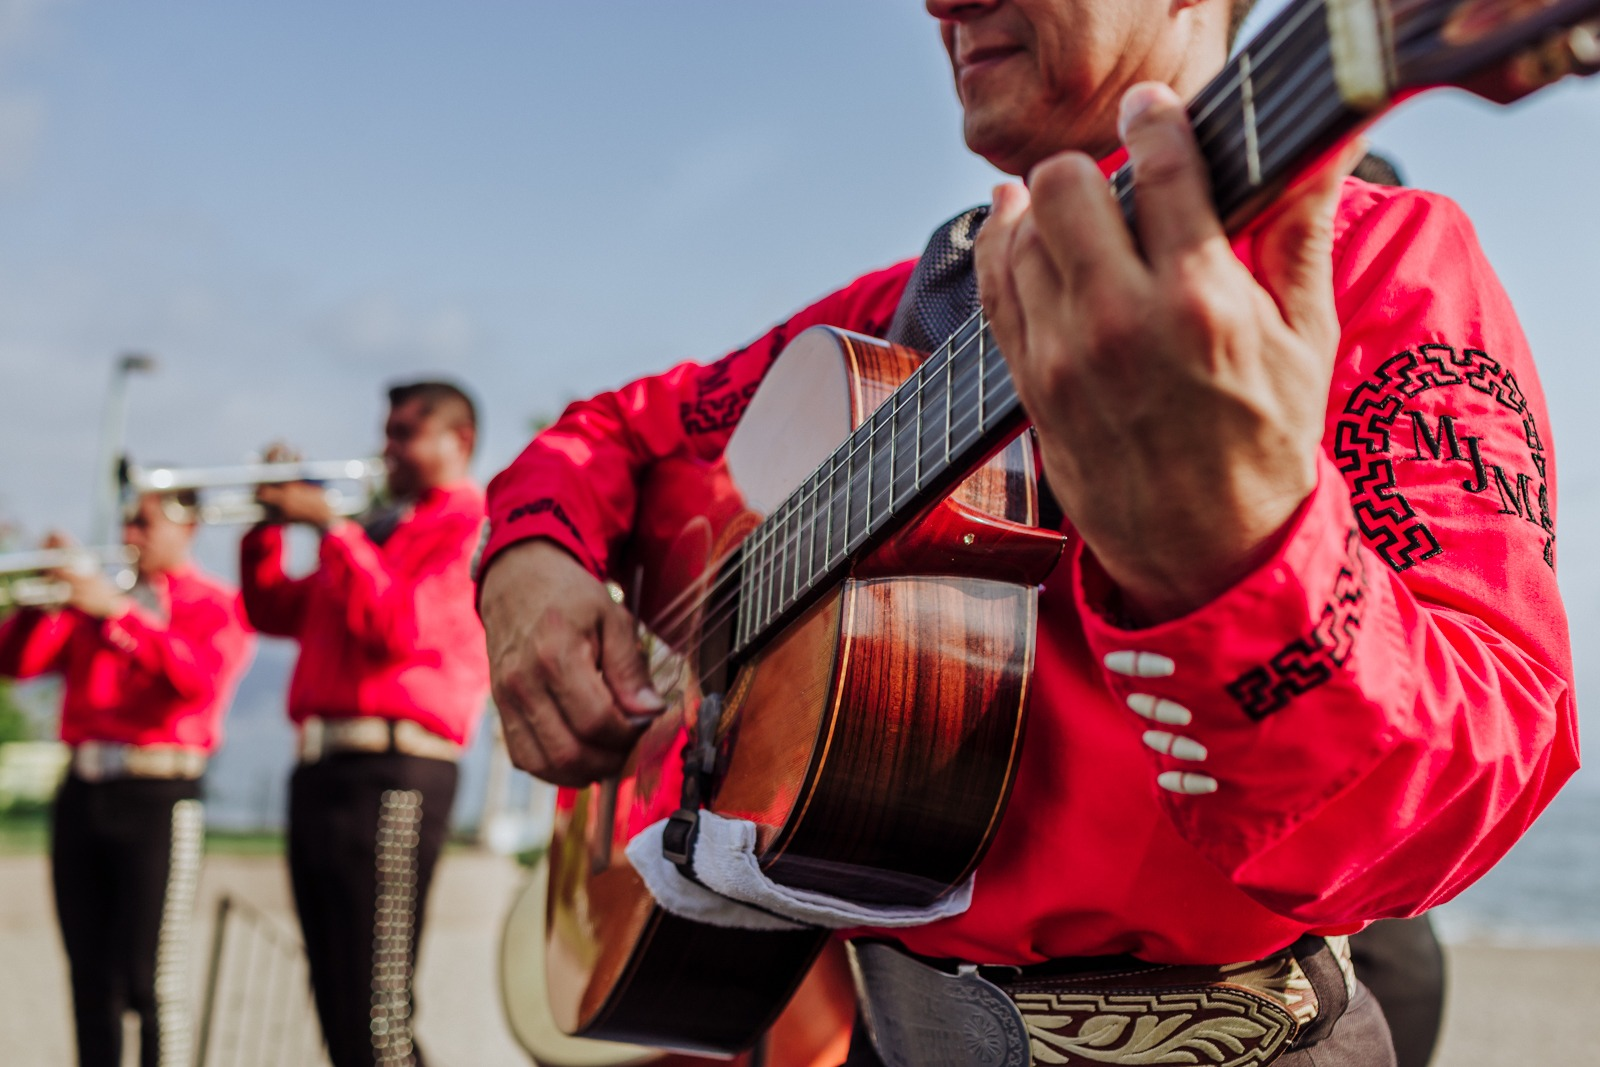 wedding-show-mariachi-mexico-beach-guitar-music-folklore